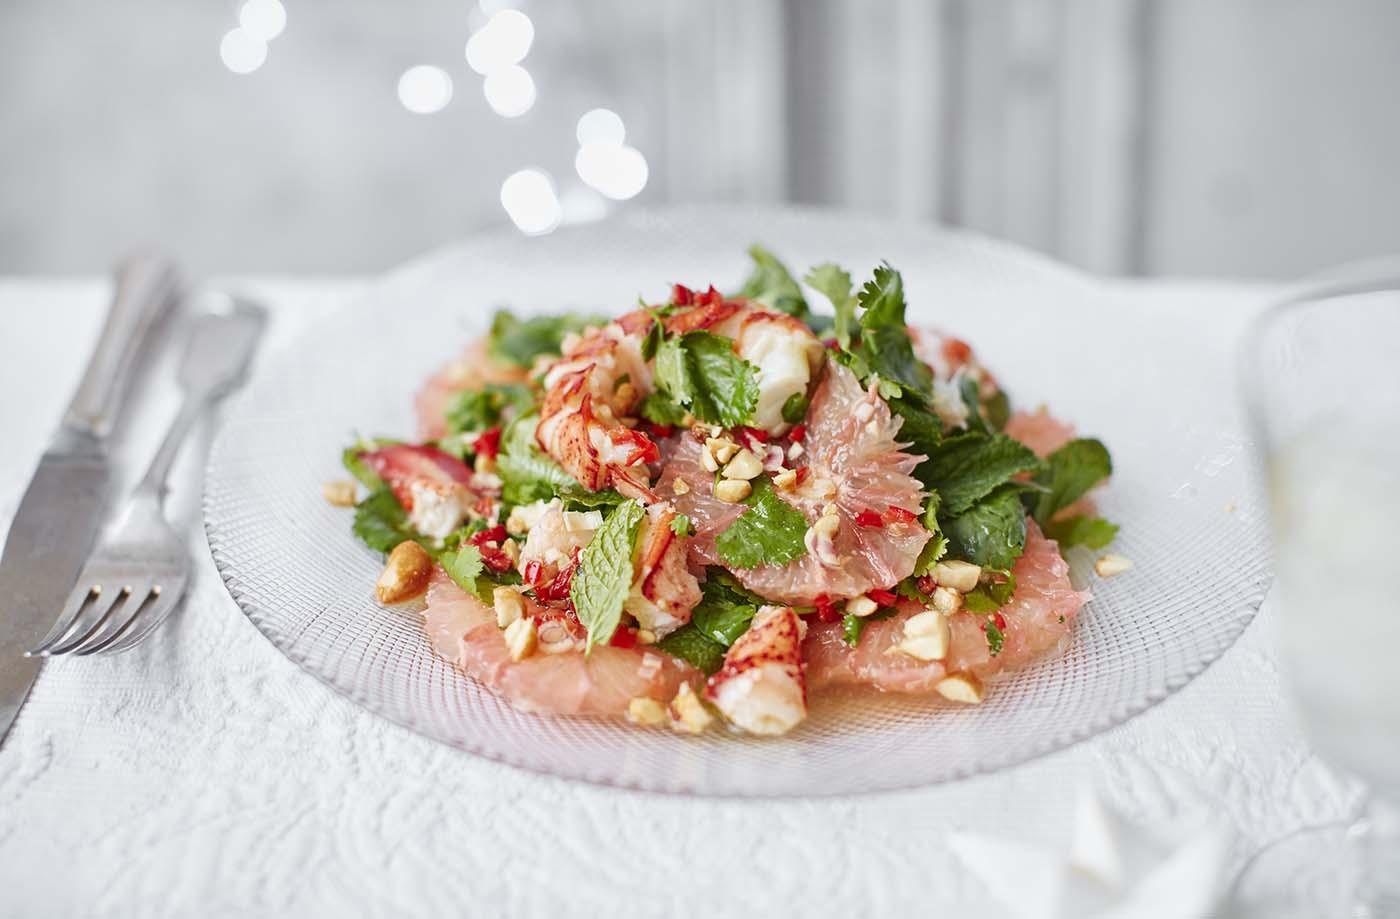 Set the tone for your Christmas dinner with this impressive, luxurious starter. A Vietnamese-inspired salad that pairs meaty lobster with sharp grapefruit, fresh mint and a wonderfully fragrant sweet and sour dressing